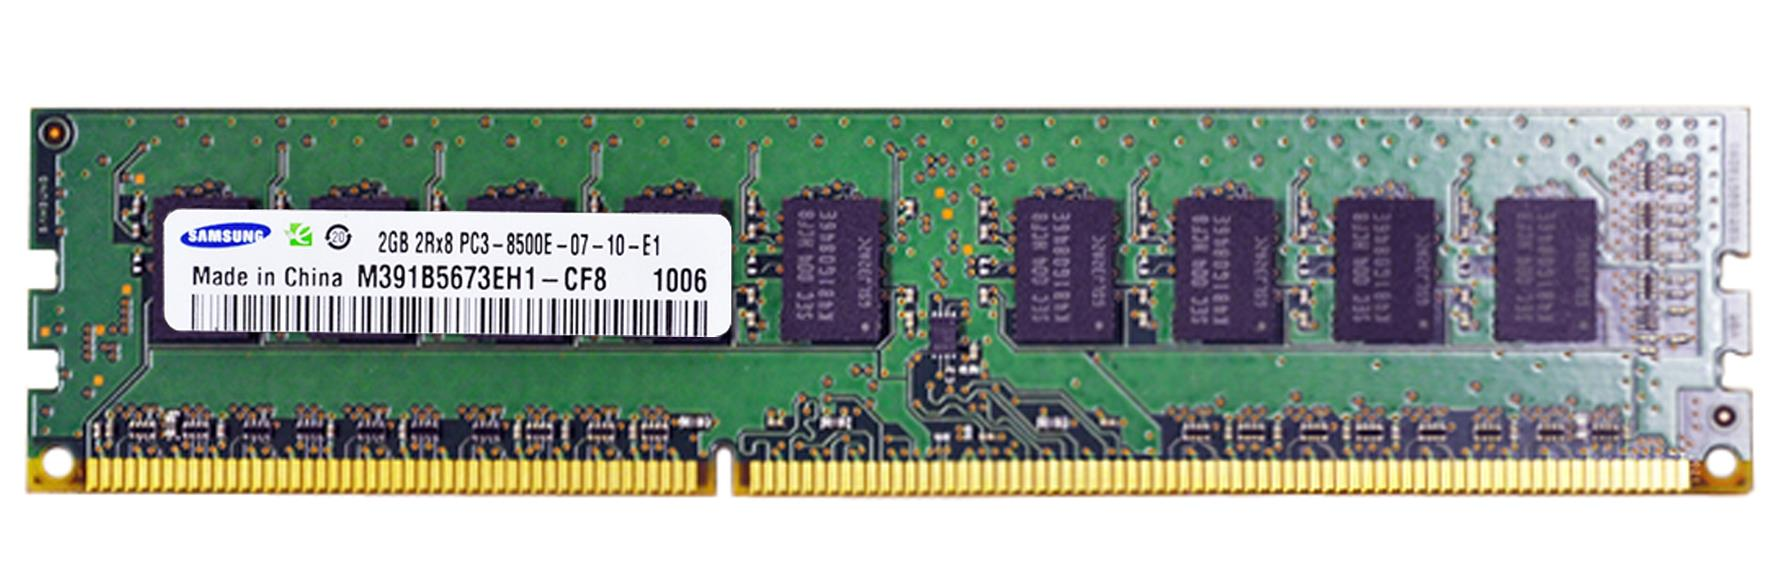 Samsung 2GB PC3-8500E DDR3-1066 Unbuffered ECC 2Rx8 Server Memory